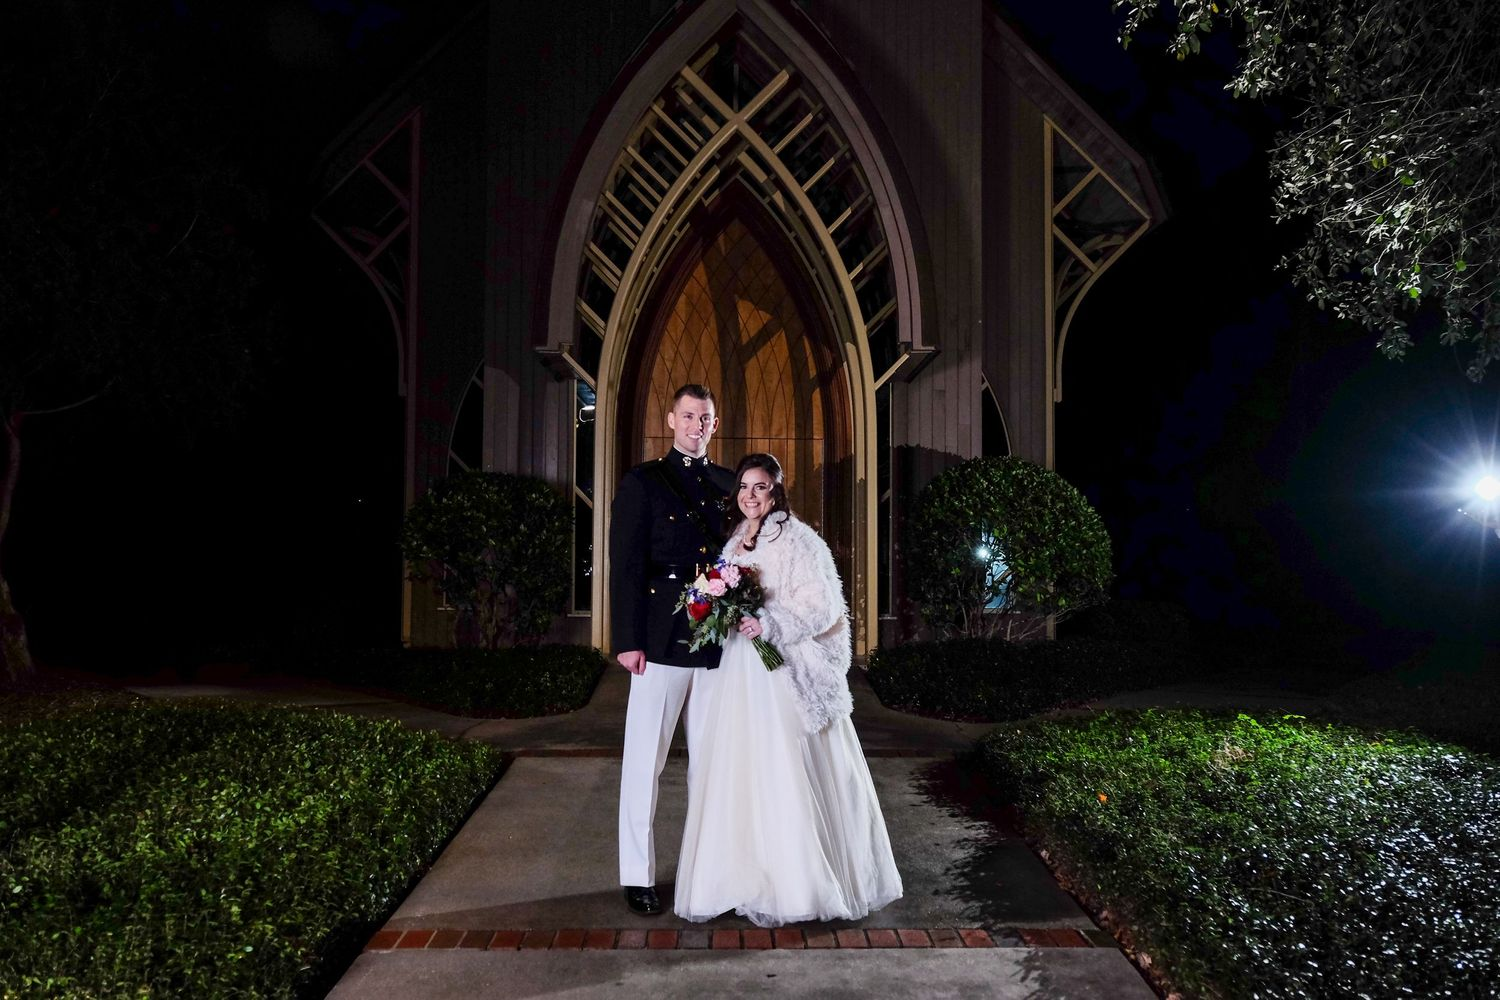 Portrait of bride and groom at night in front of the Baughman Center, Gainesville, Fl.